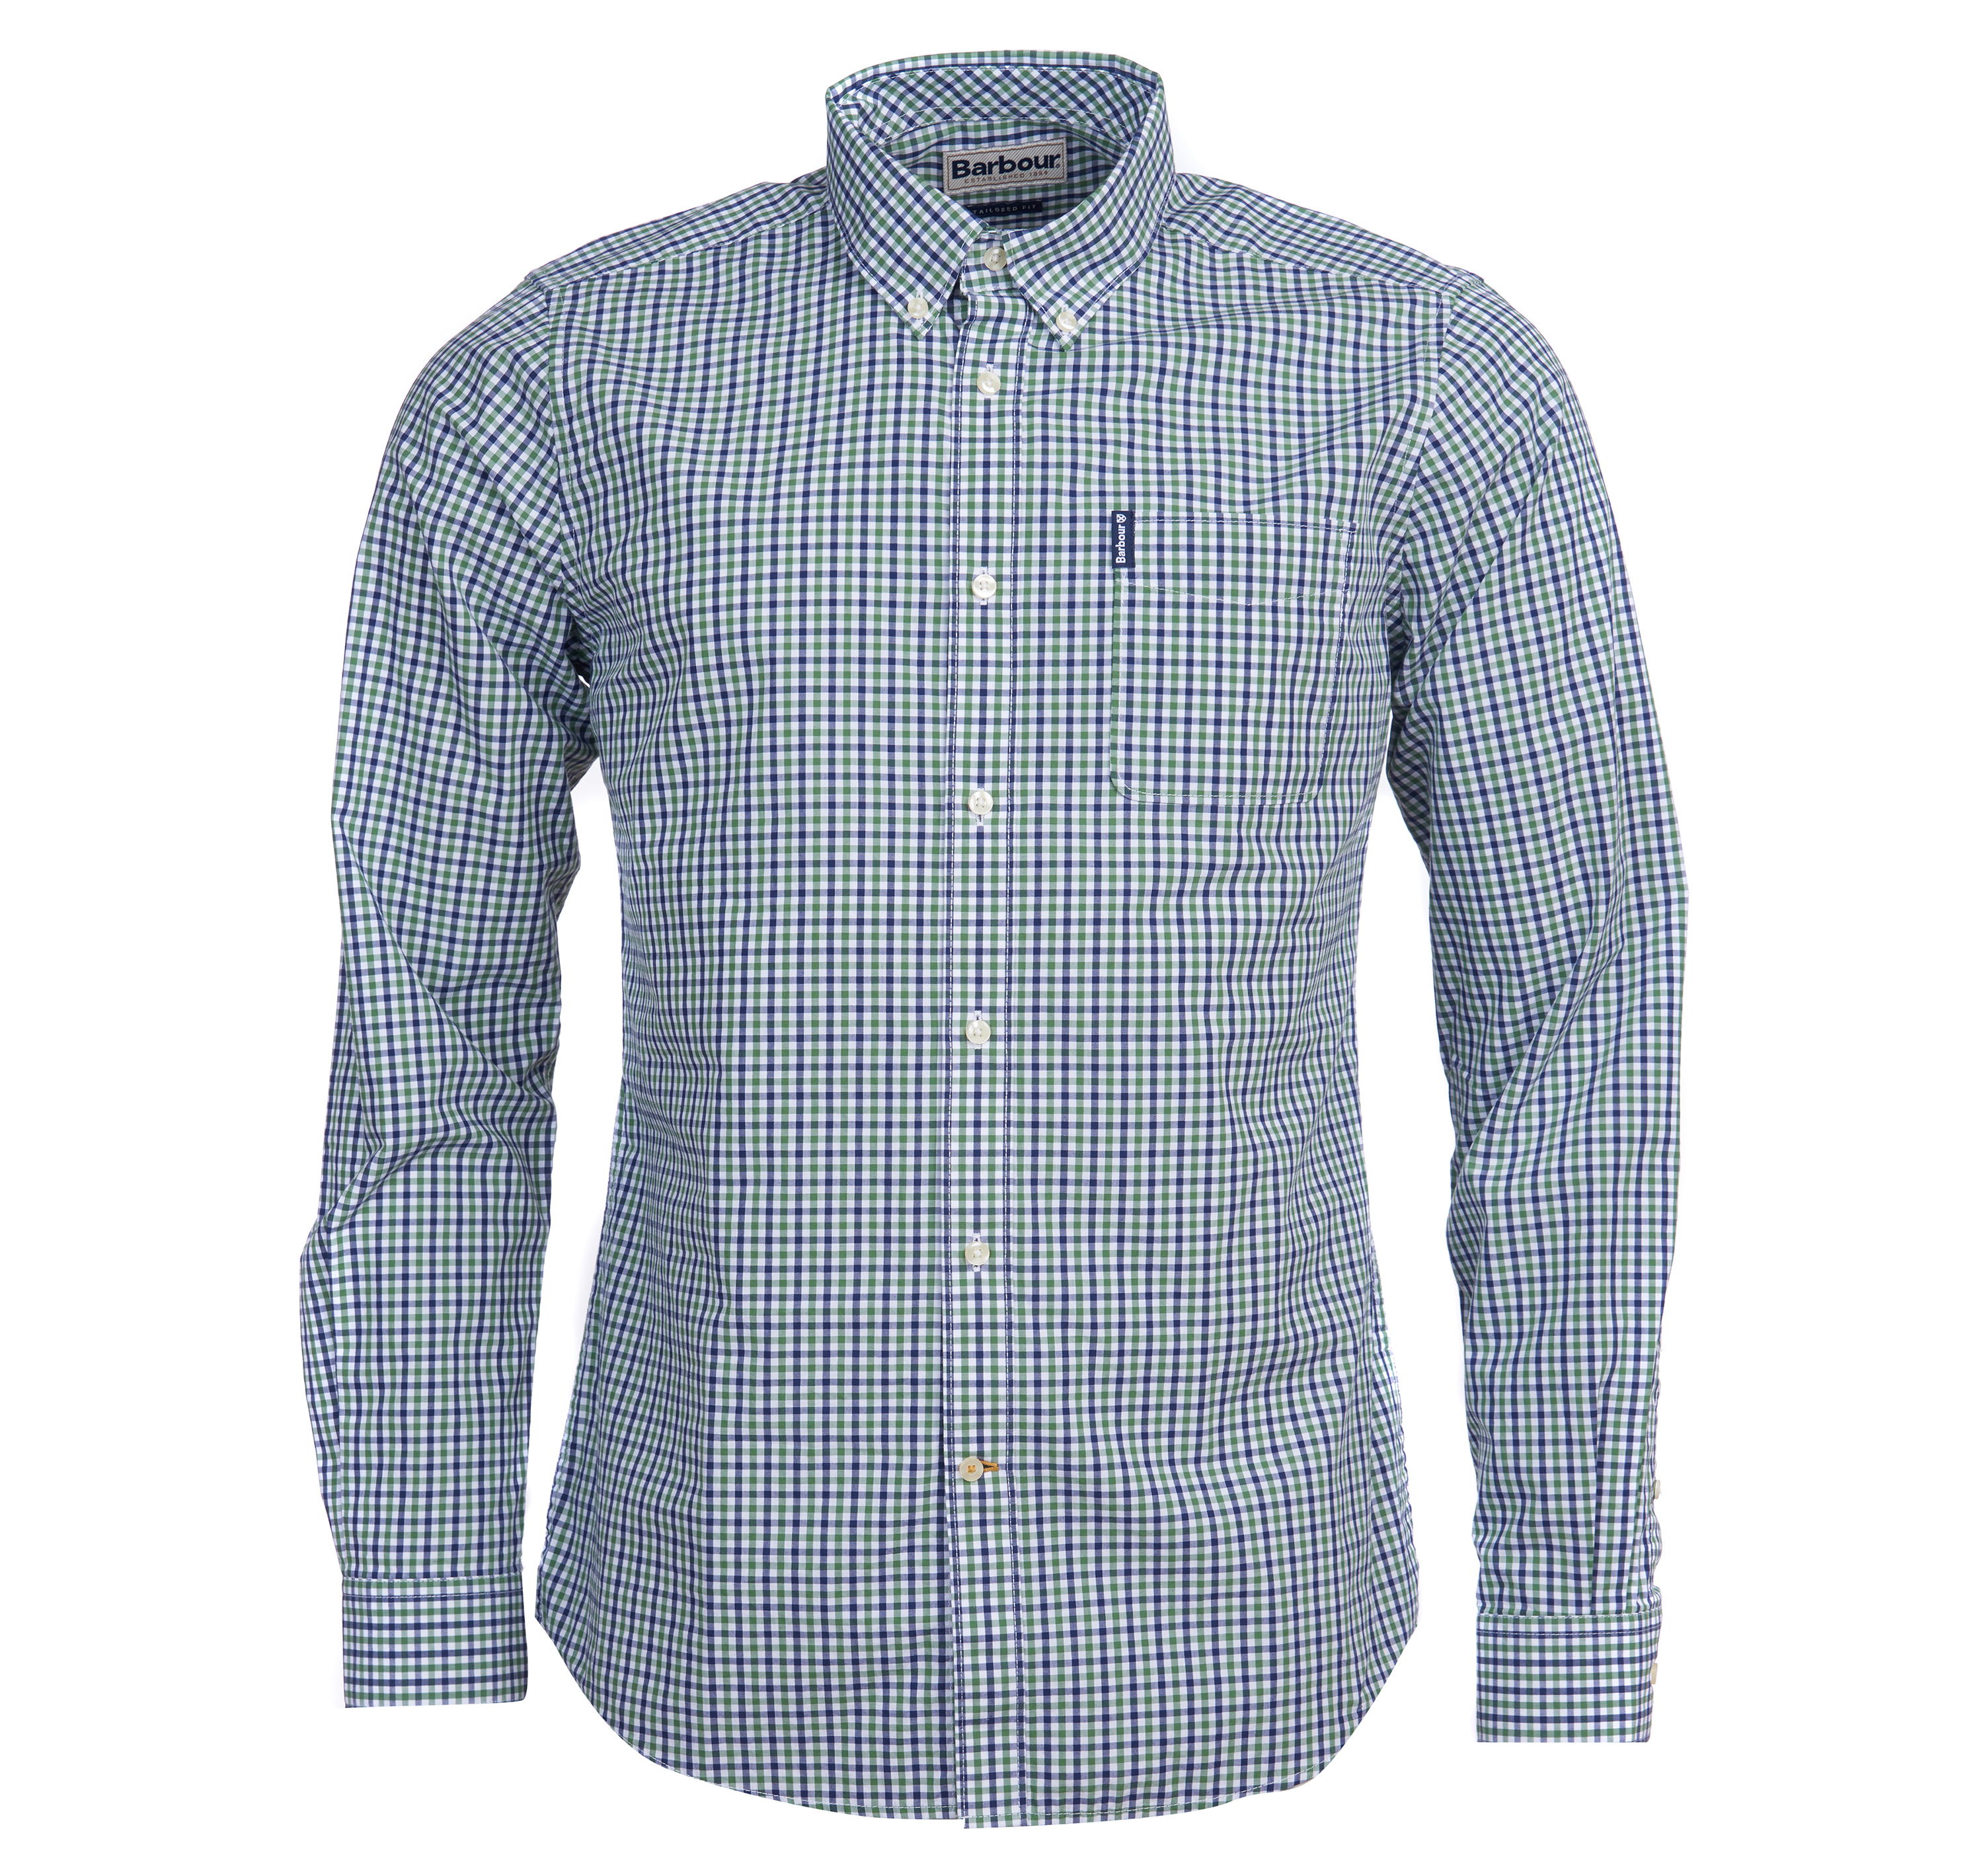 Barbour Barbour Gingham 16 Tailored Shirt Green Tailored Fit